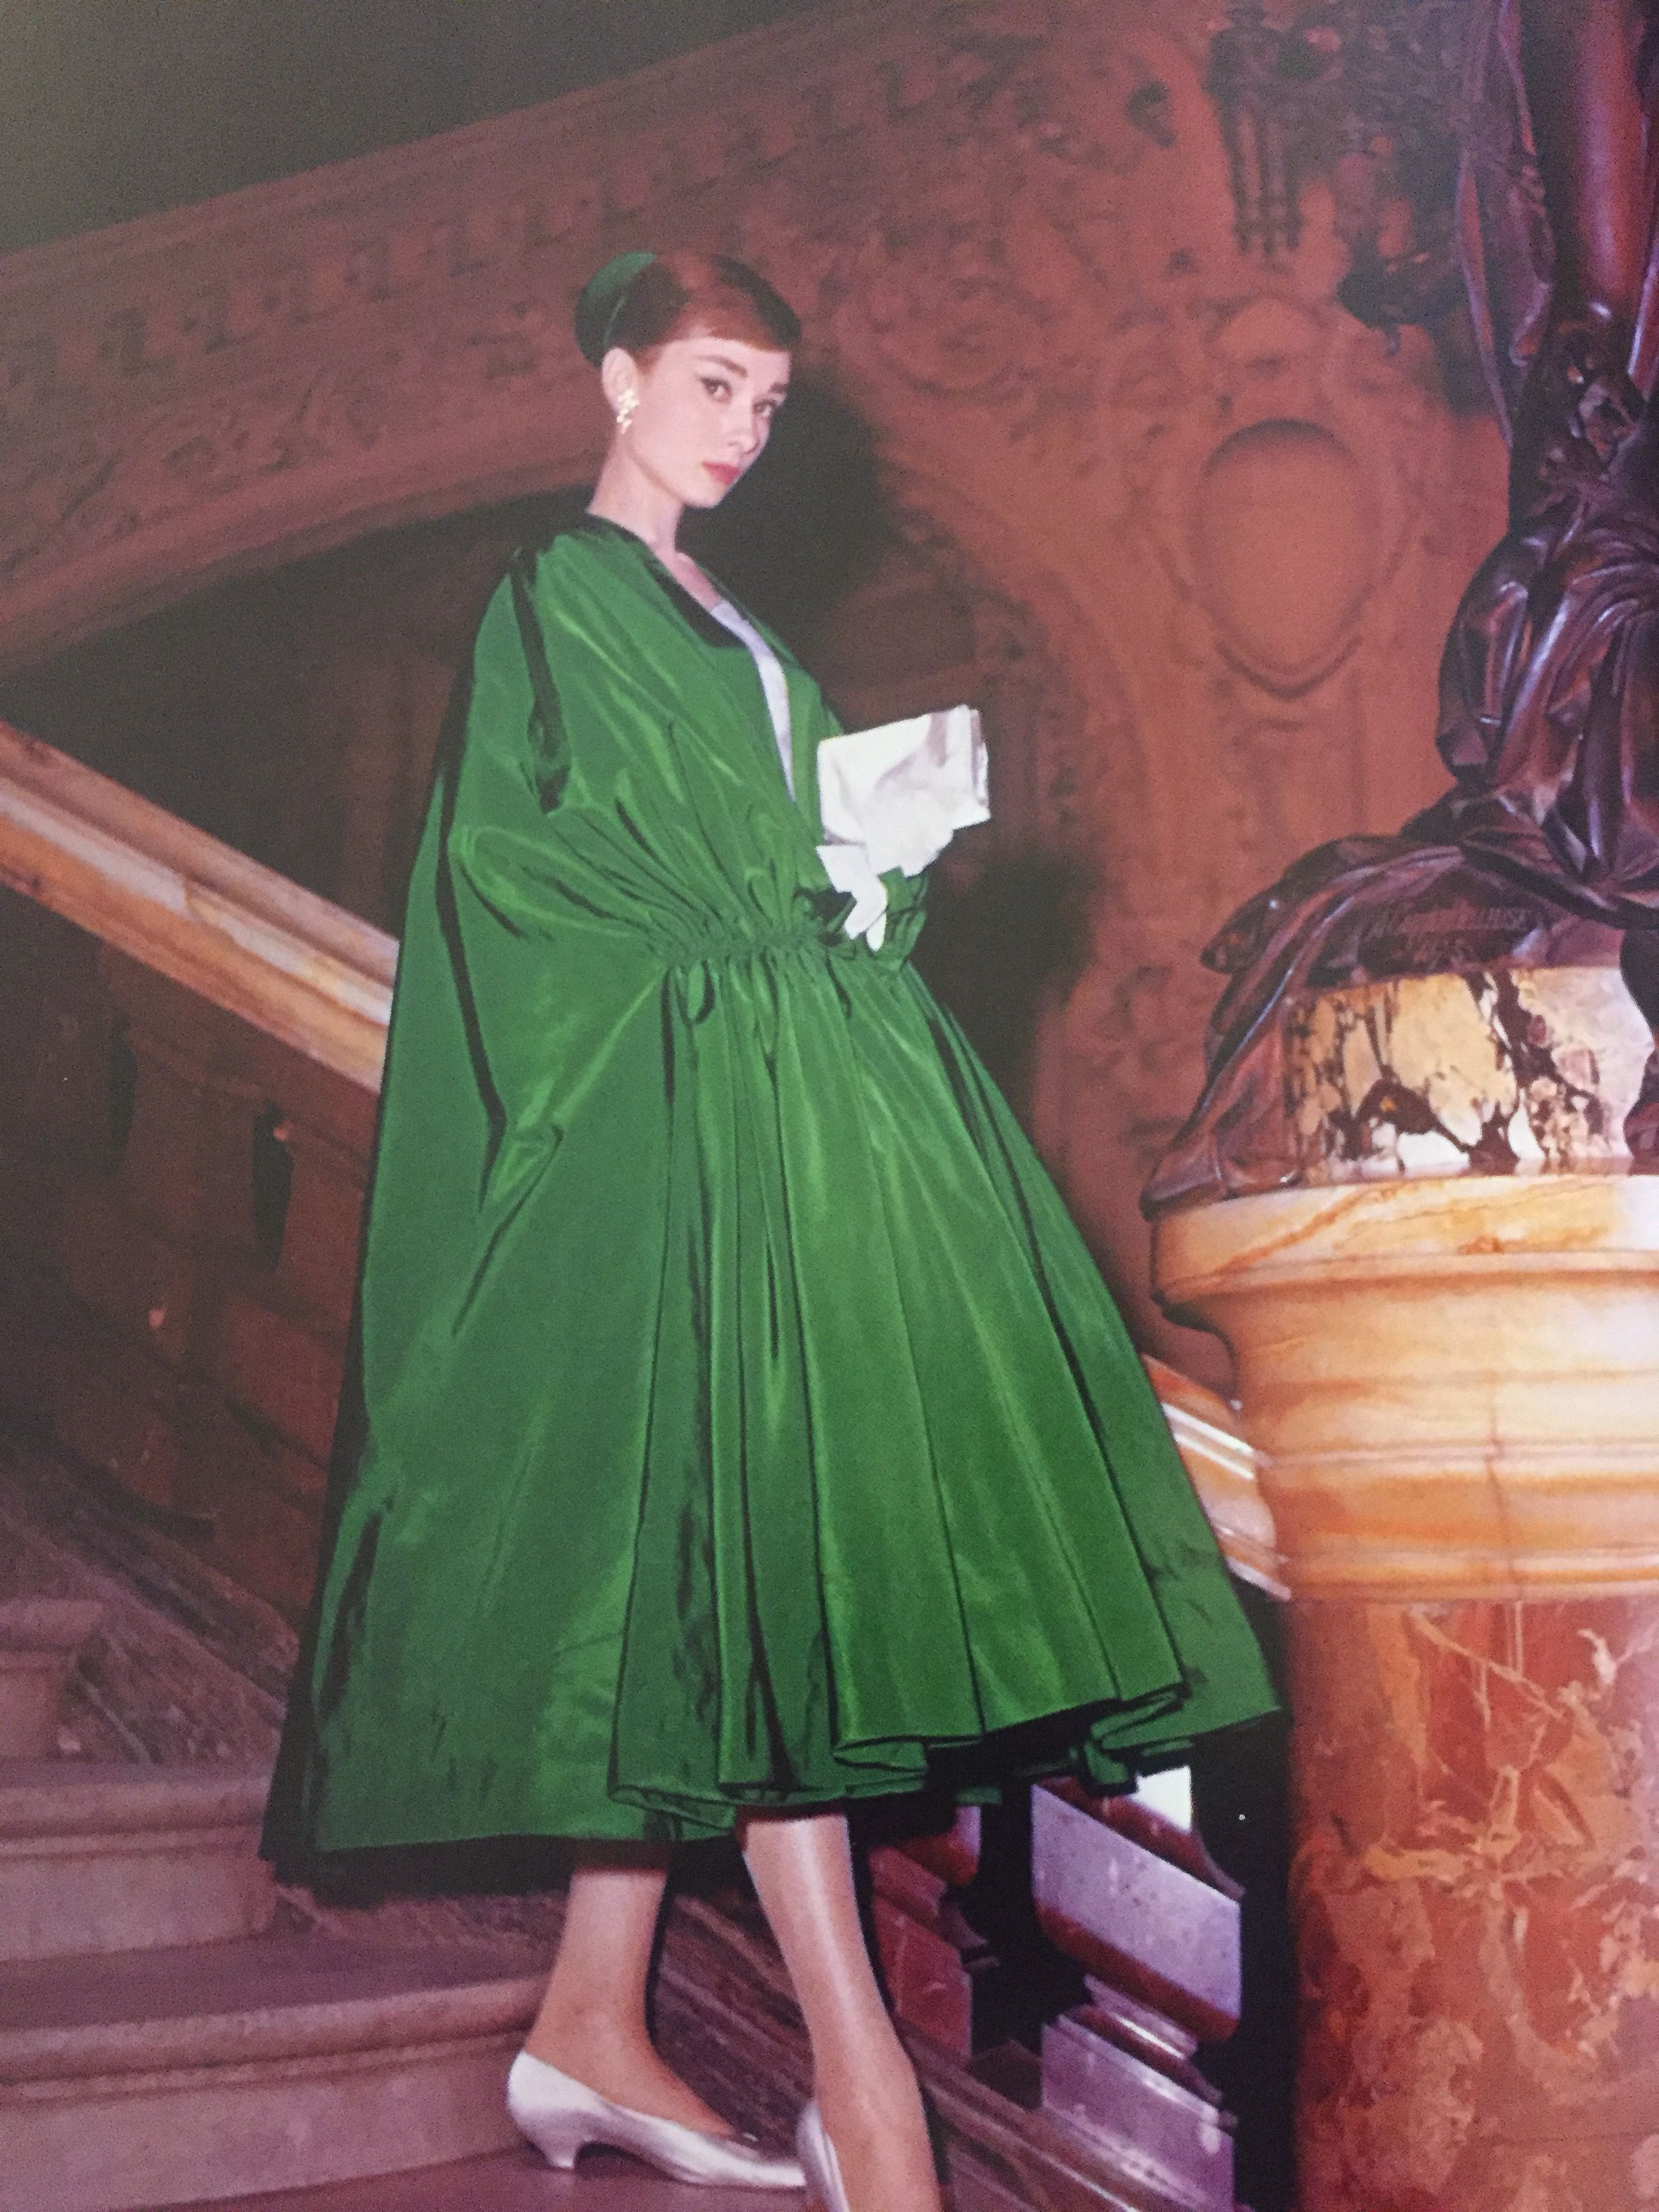 Pin By Antonio Picascia On A A Audrey Hepburn Dress Audrey Hepburn Photos Audrey Hepburn